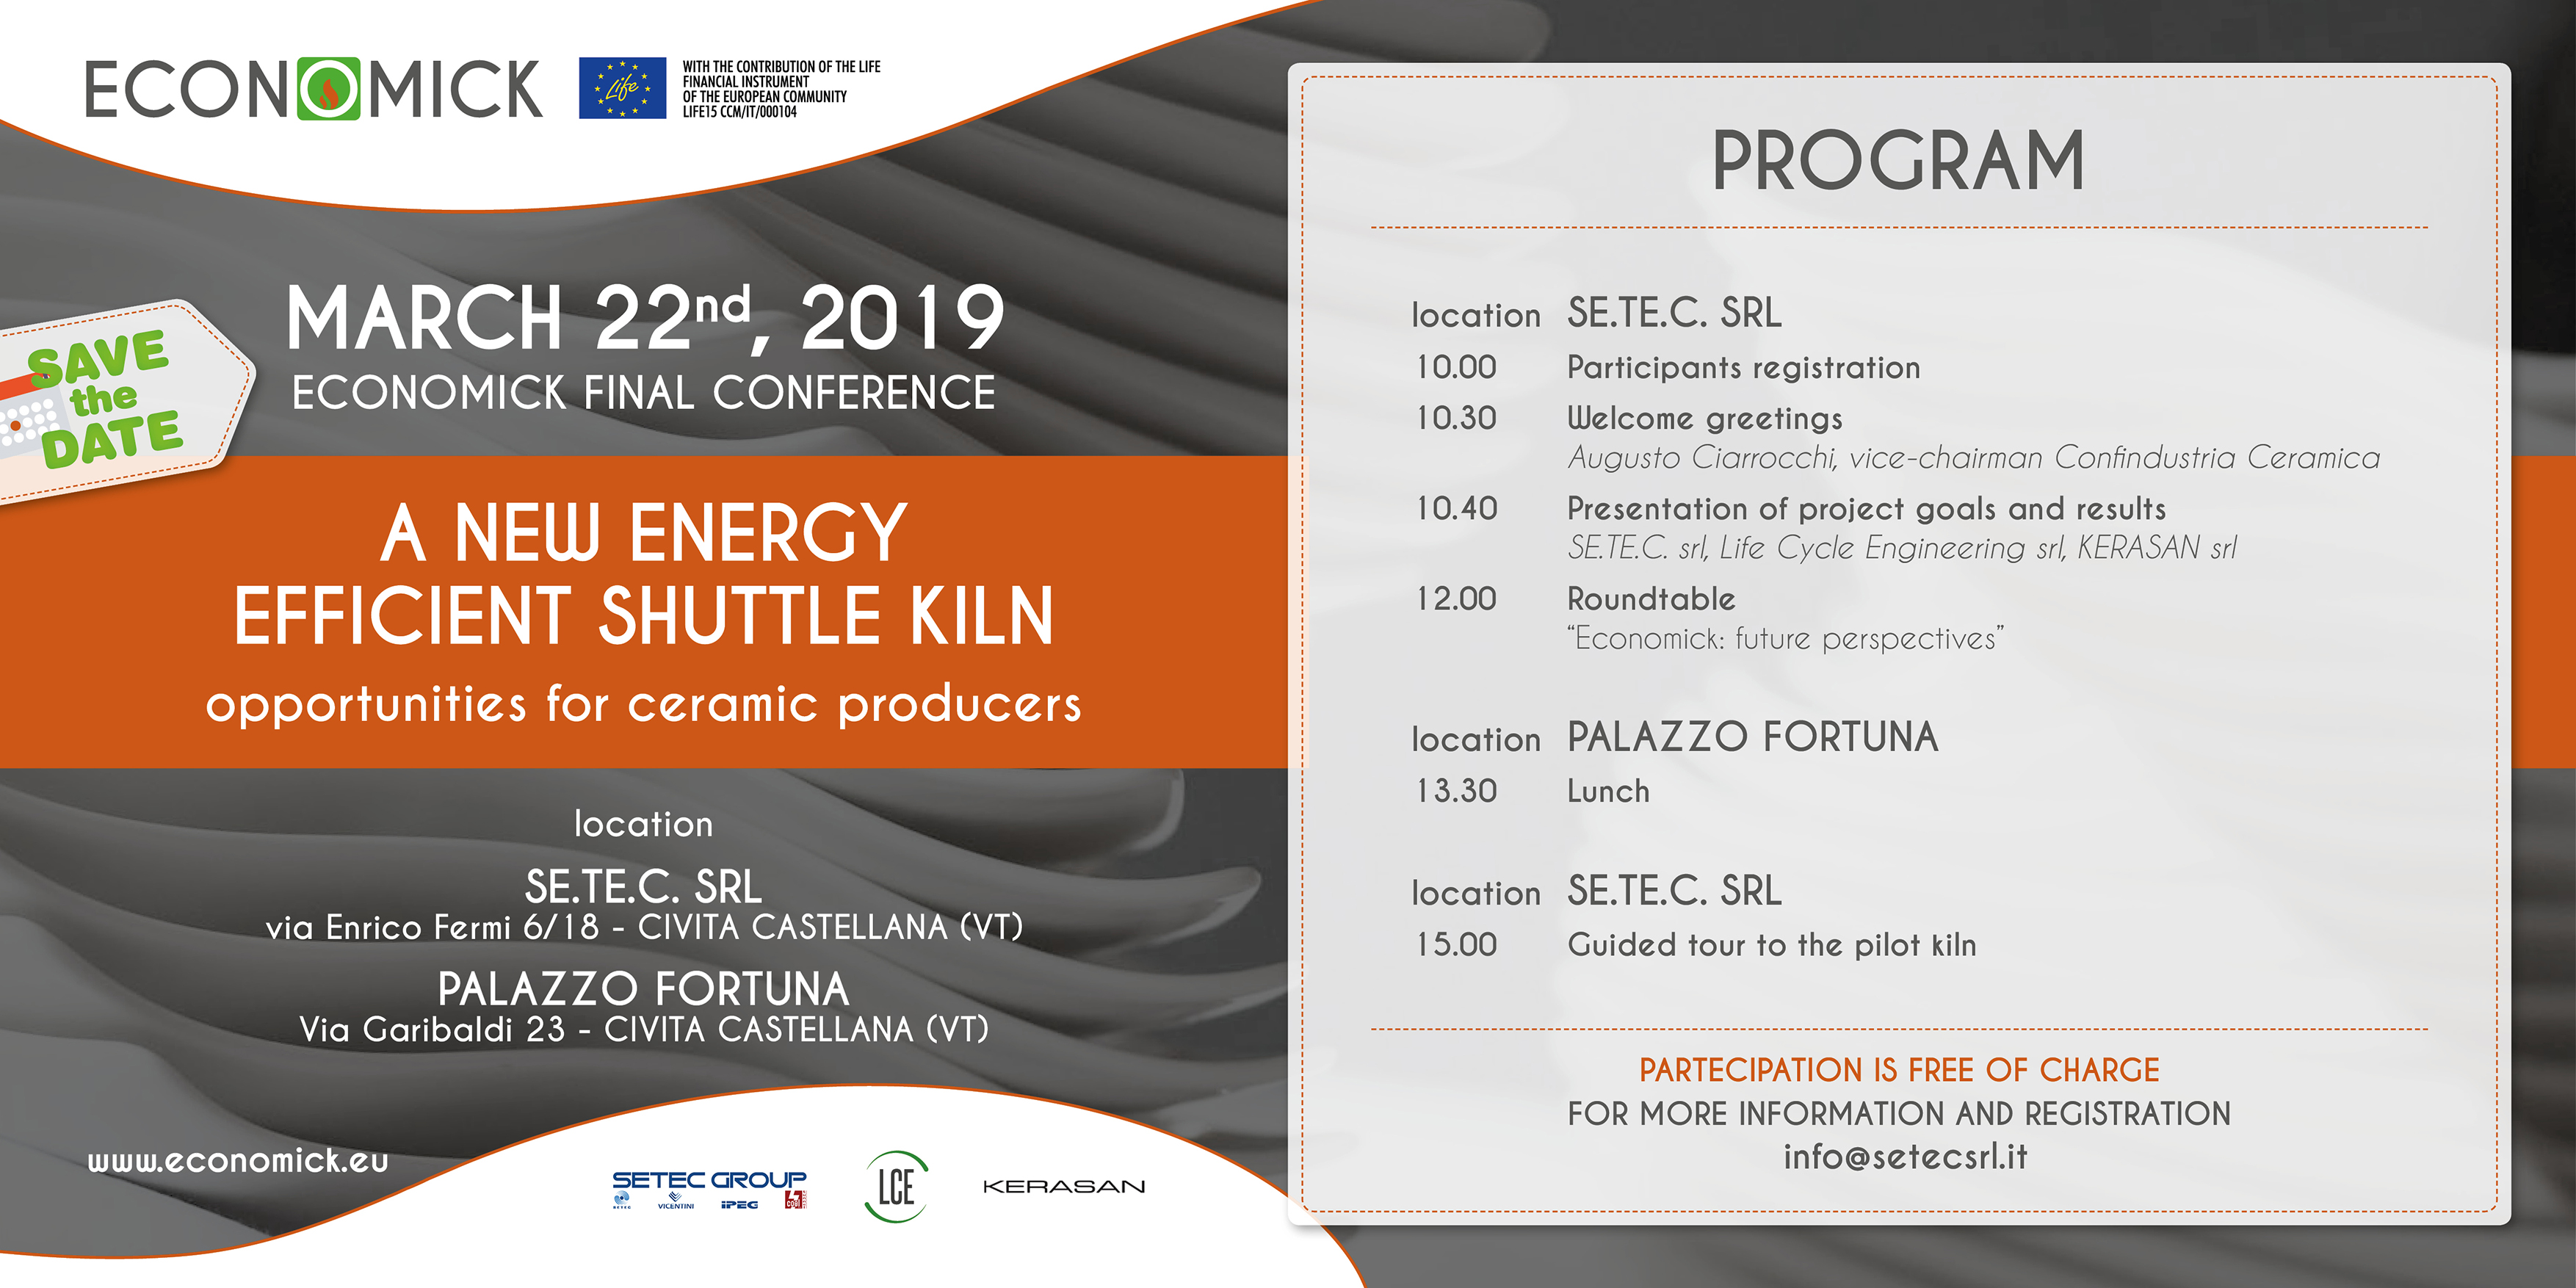 ENG_savethedate_economick_conf_fin_2019